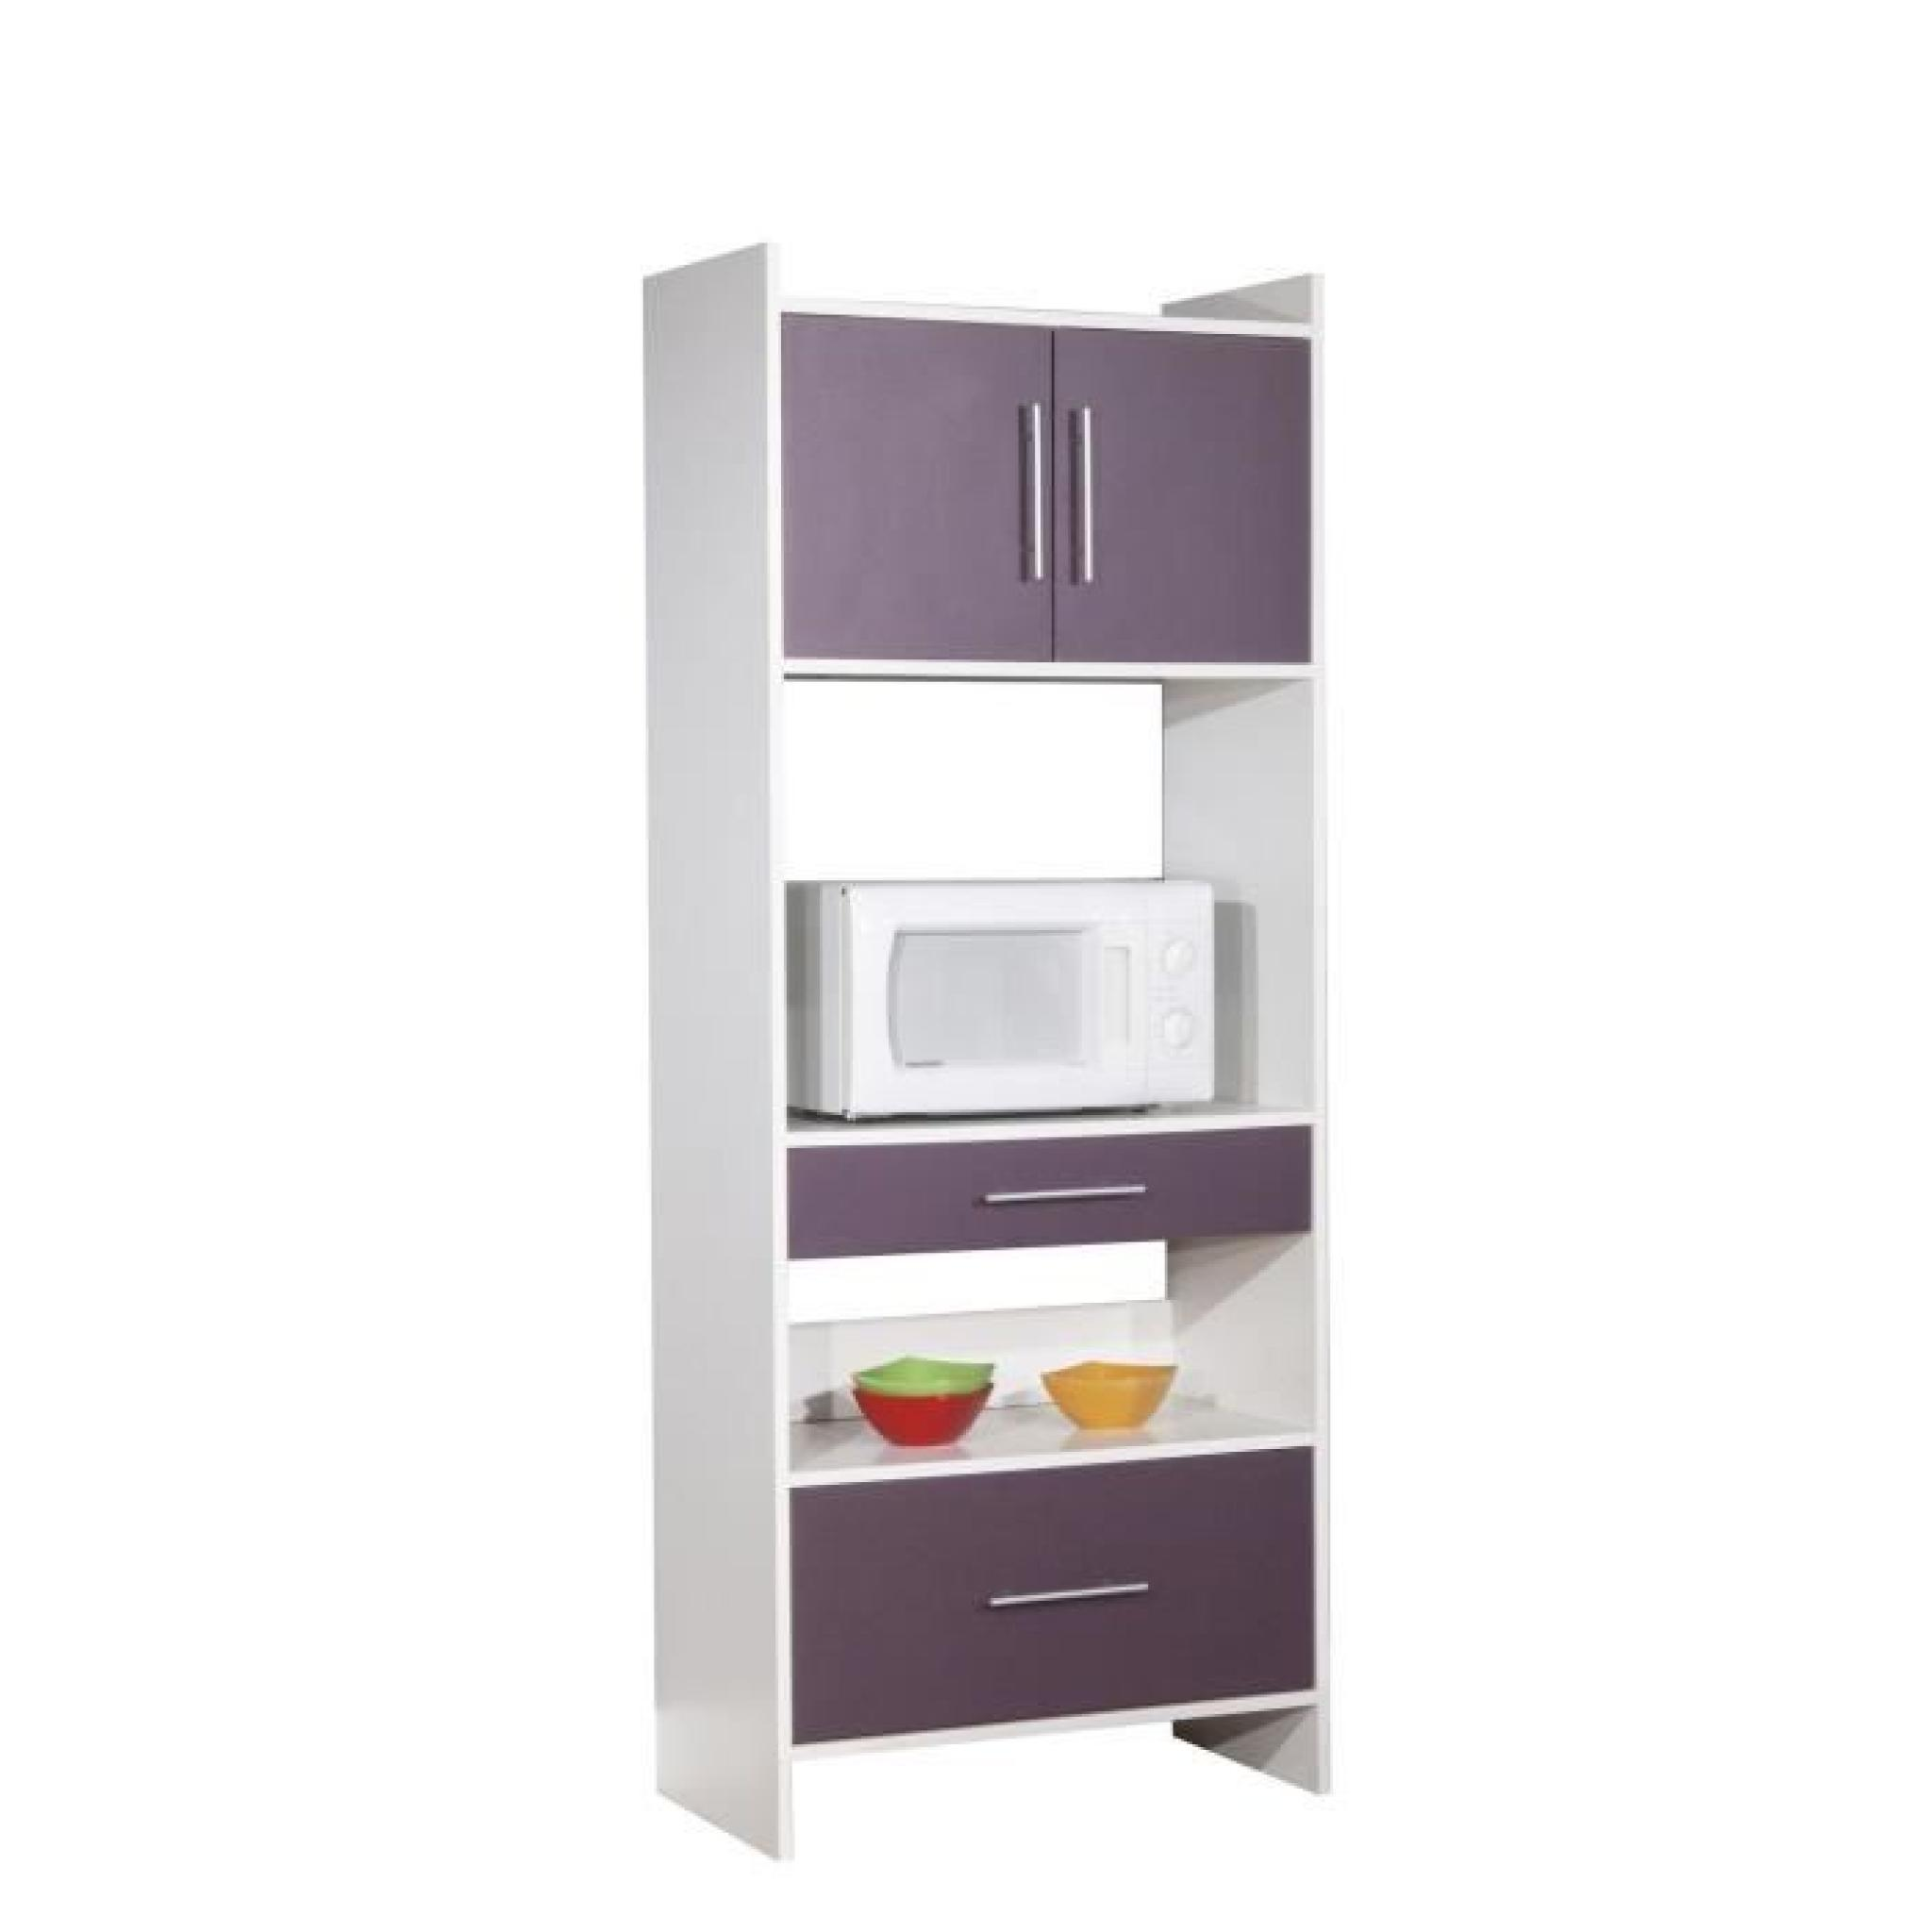 peps buffet de cuisine 70cm aubergine et blanc achat. Black Bedroom Furniture Sets. Home Design Ideas